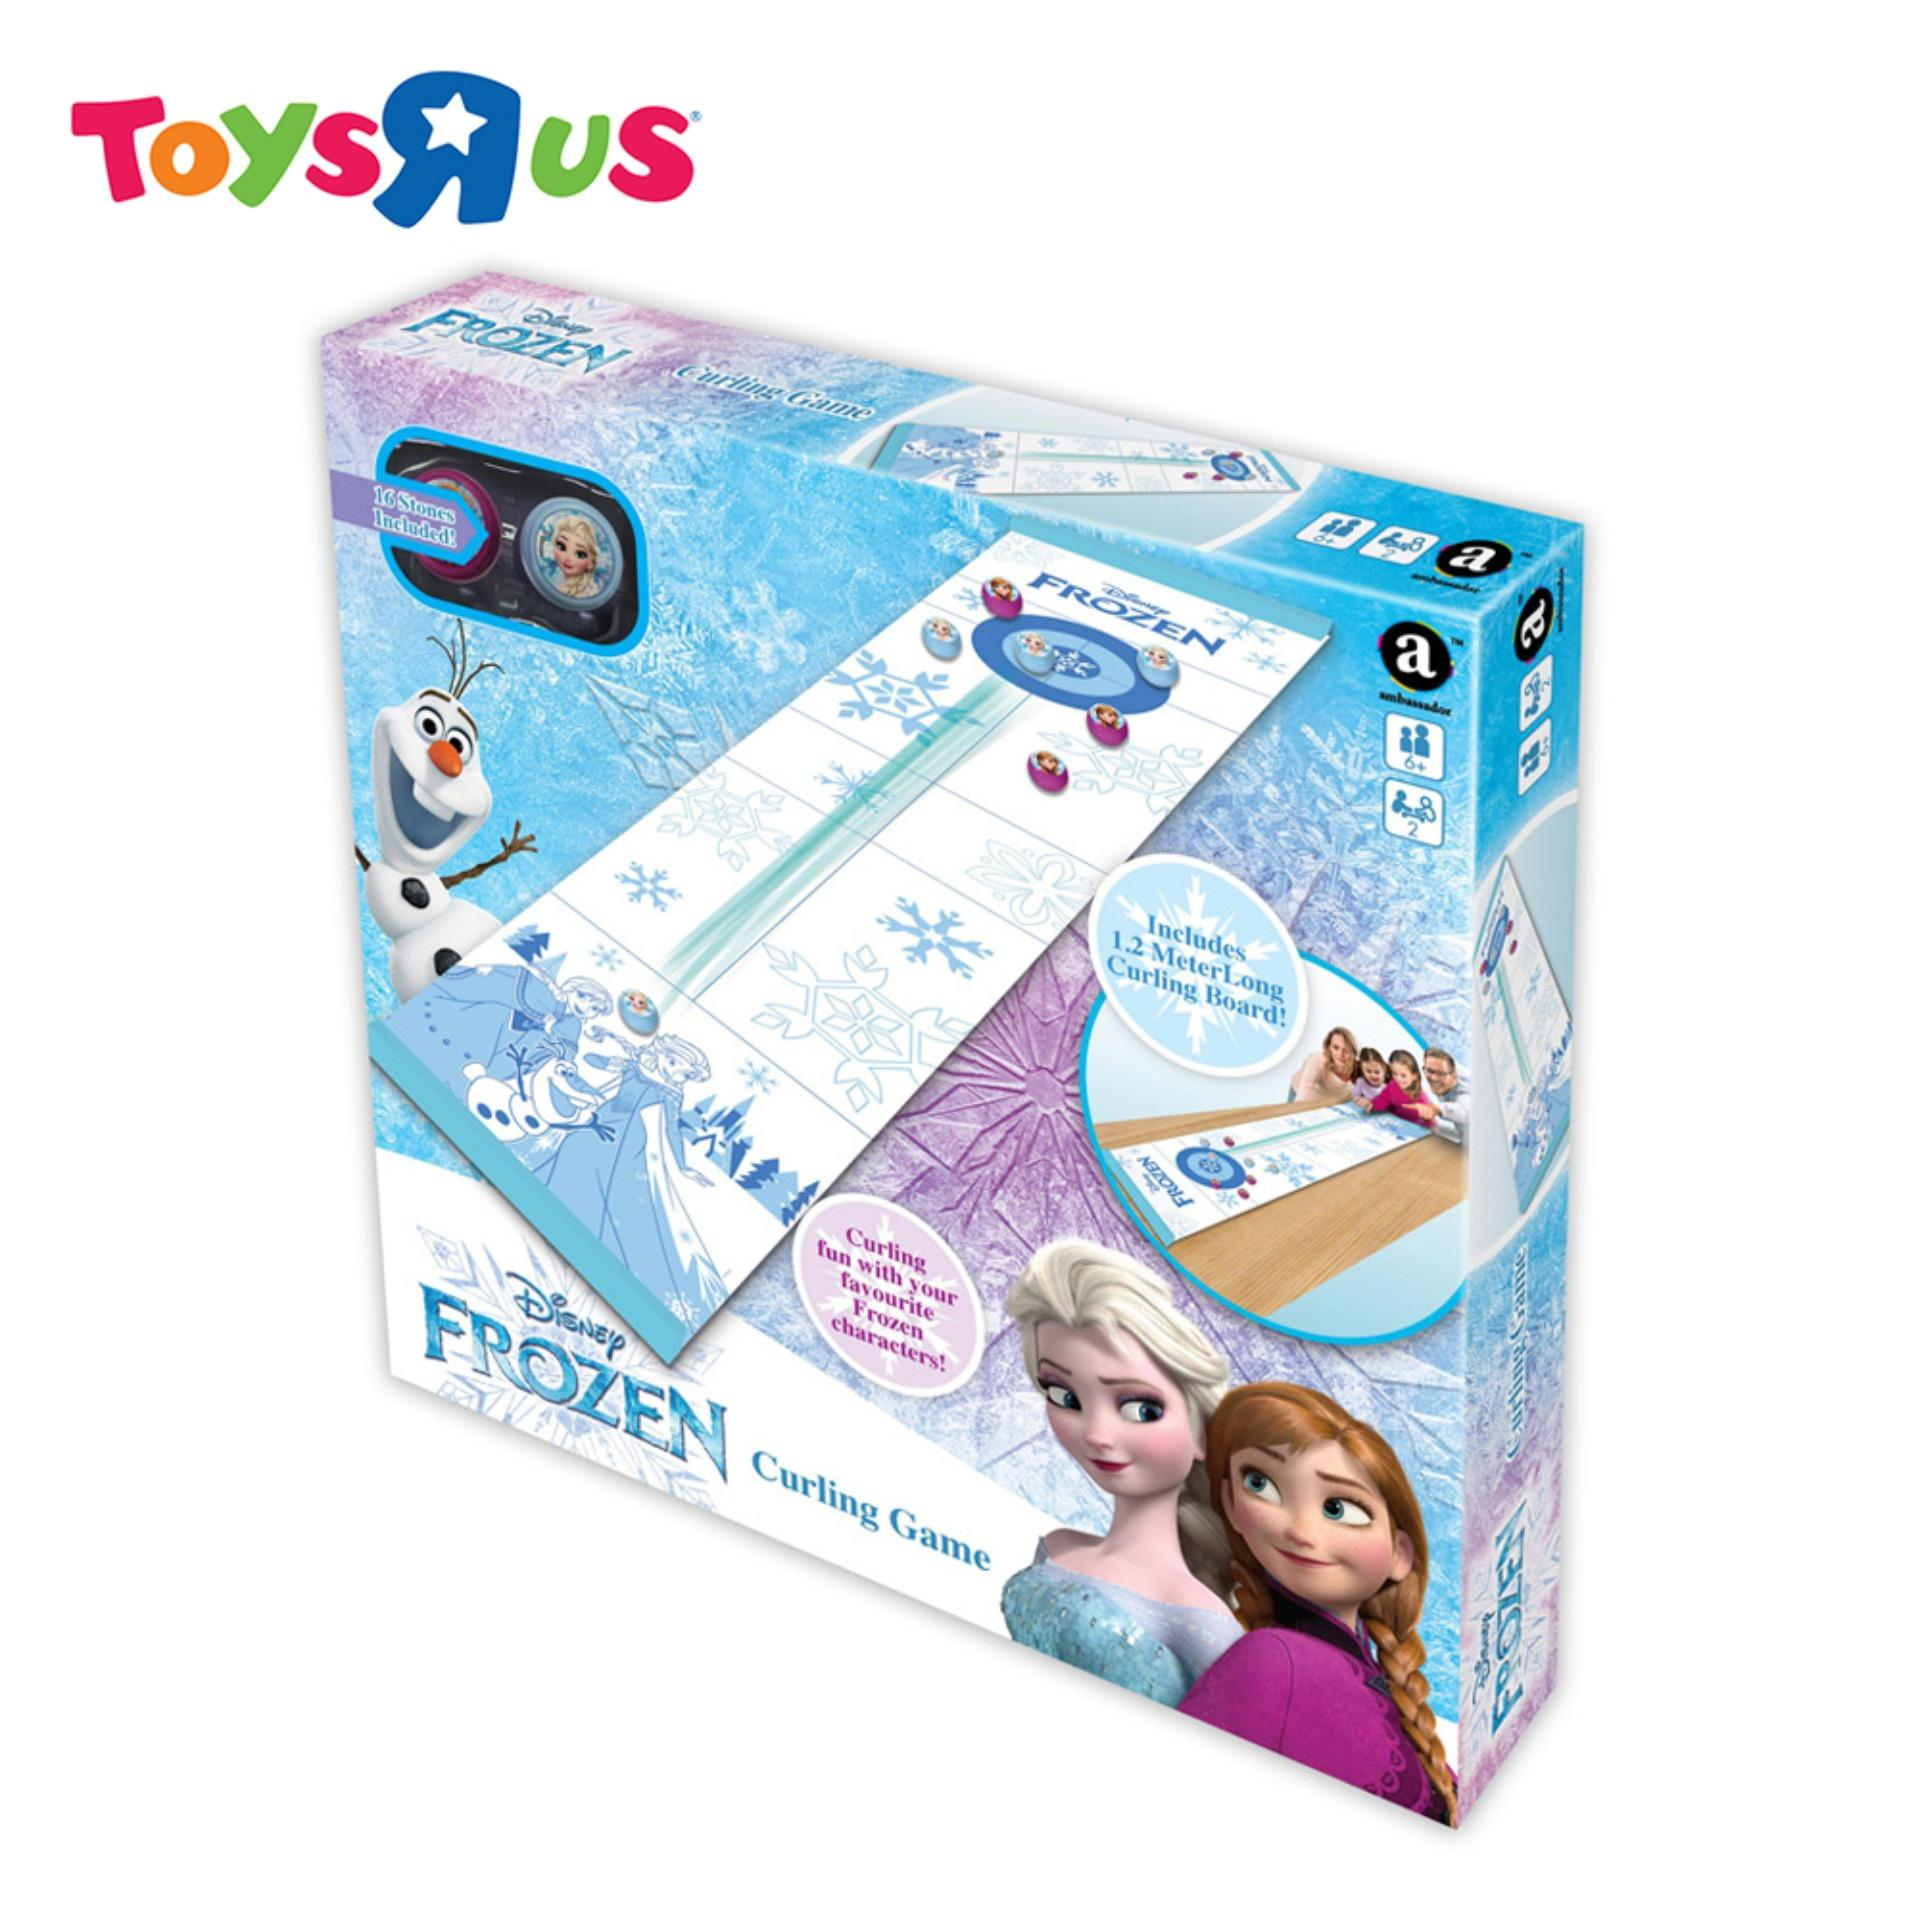 Disney Frozen Curling Game Buy Sell Online Mini Table Games With Cheap Price Lazada Ph